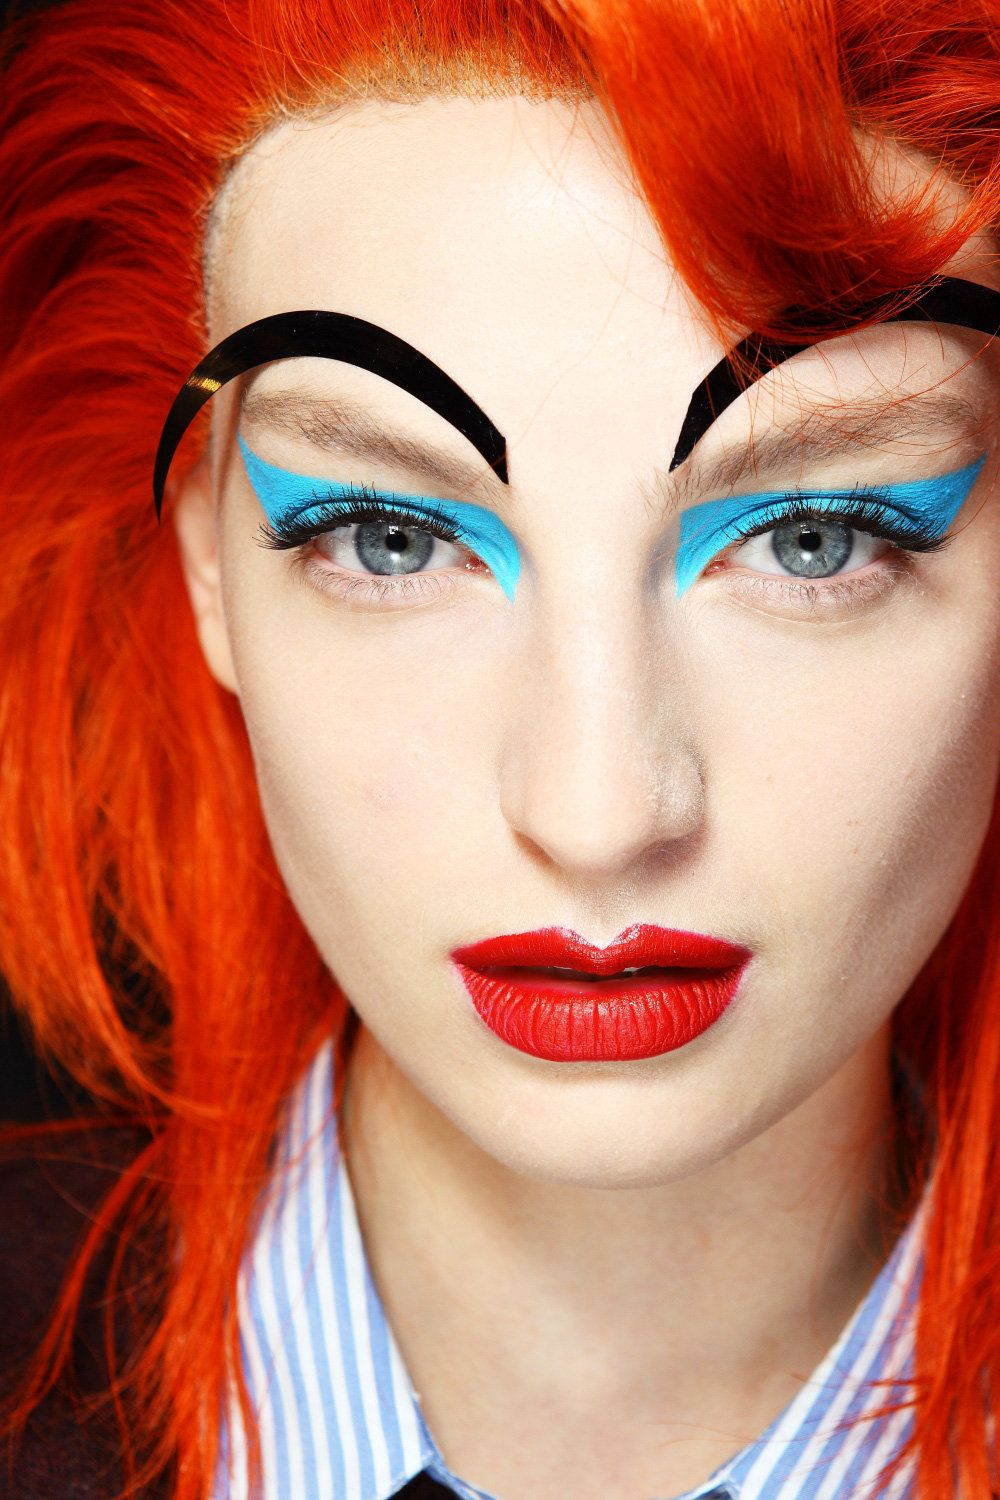 Comic Book beauty at Australian Fashion Week. Pic by Sonny Vandevelde